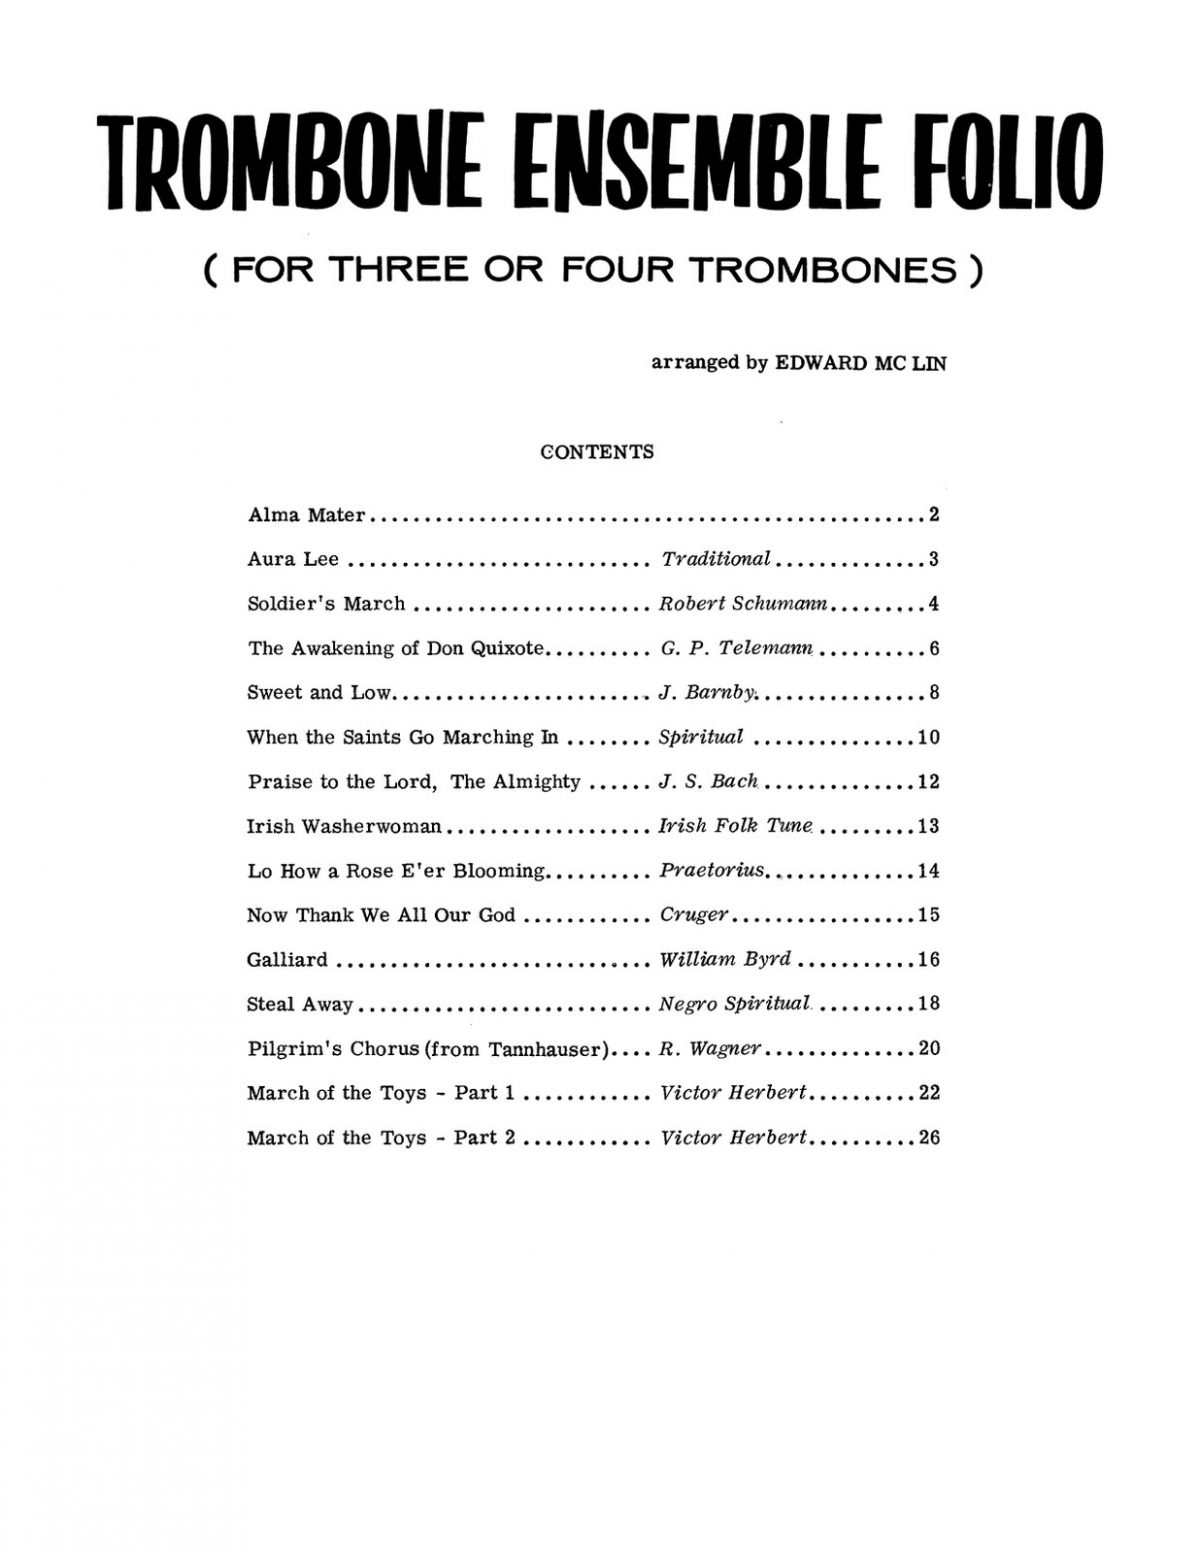 McLin, Trombone Ensemble Folio-p03